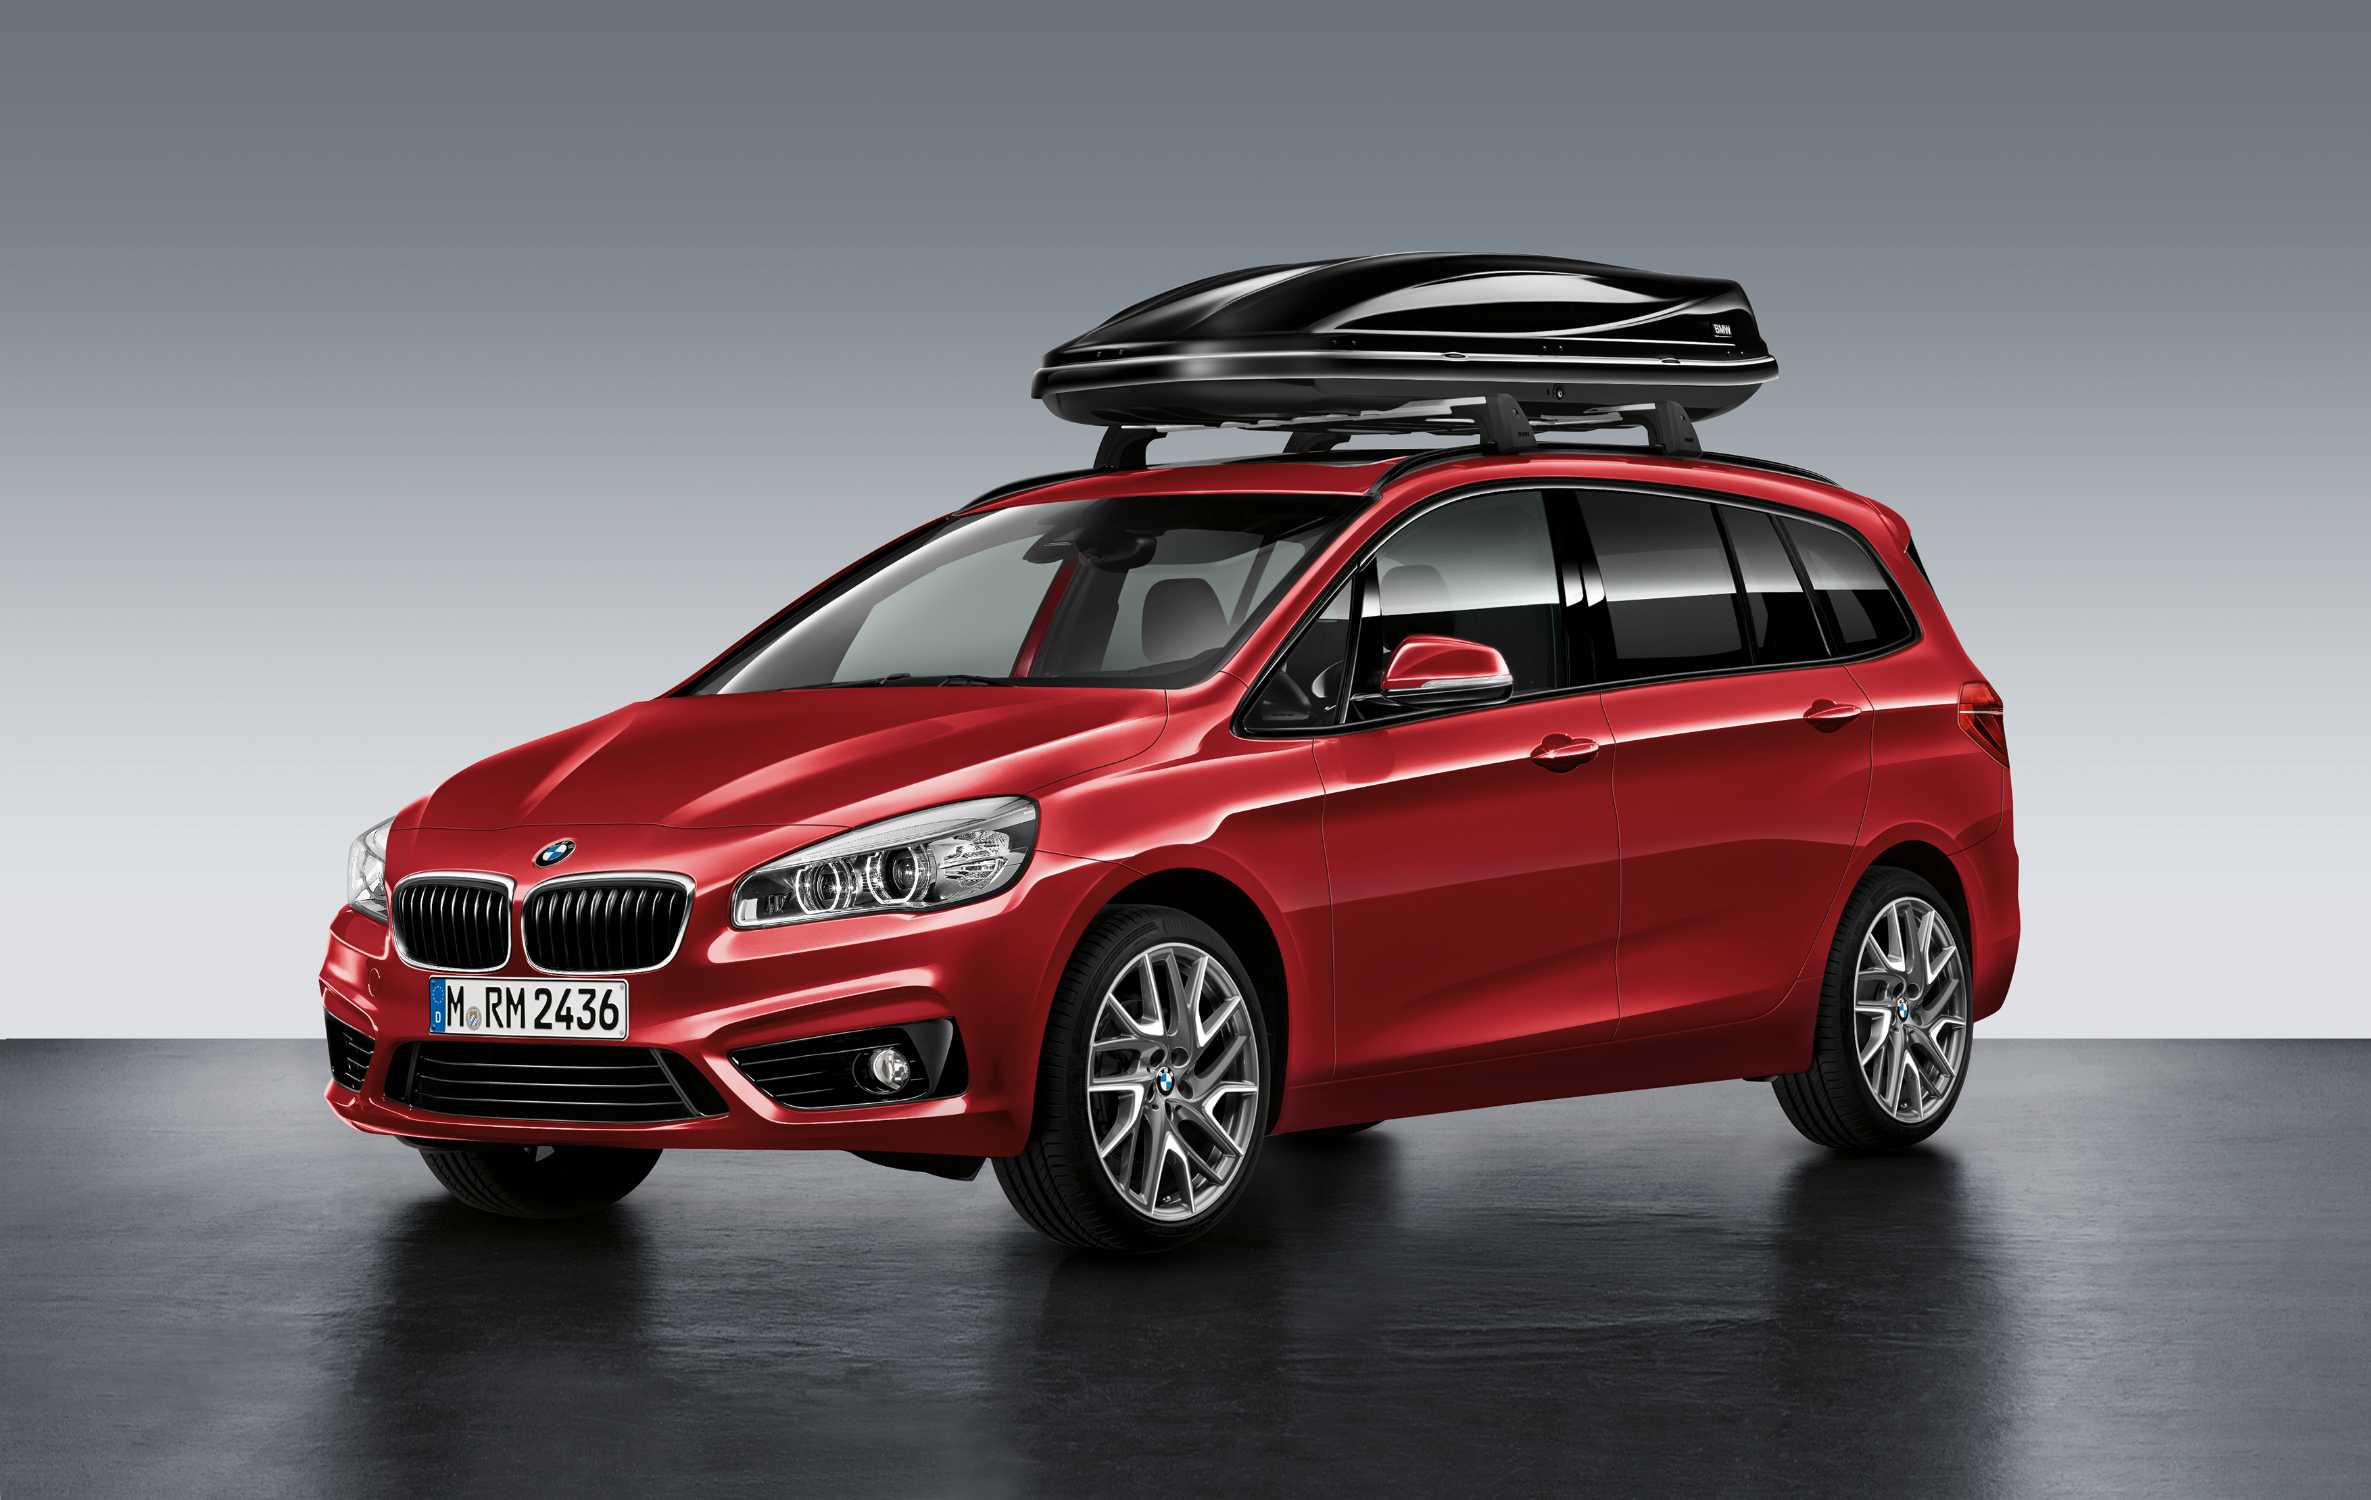 bmw 2 series gran tourer accessories bmw roof box 460. Black Bedroom Furniture Sets. Home Design Ideas